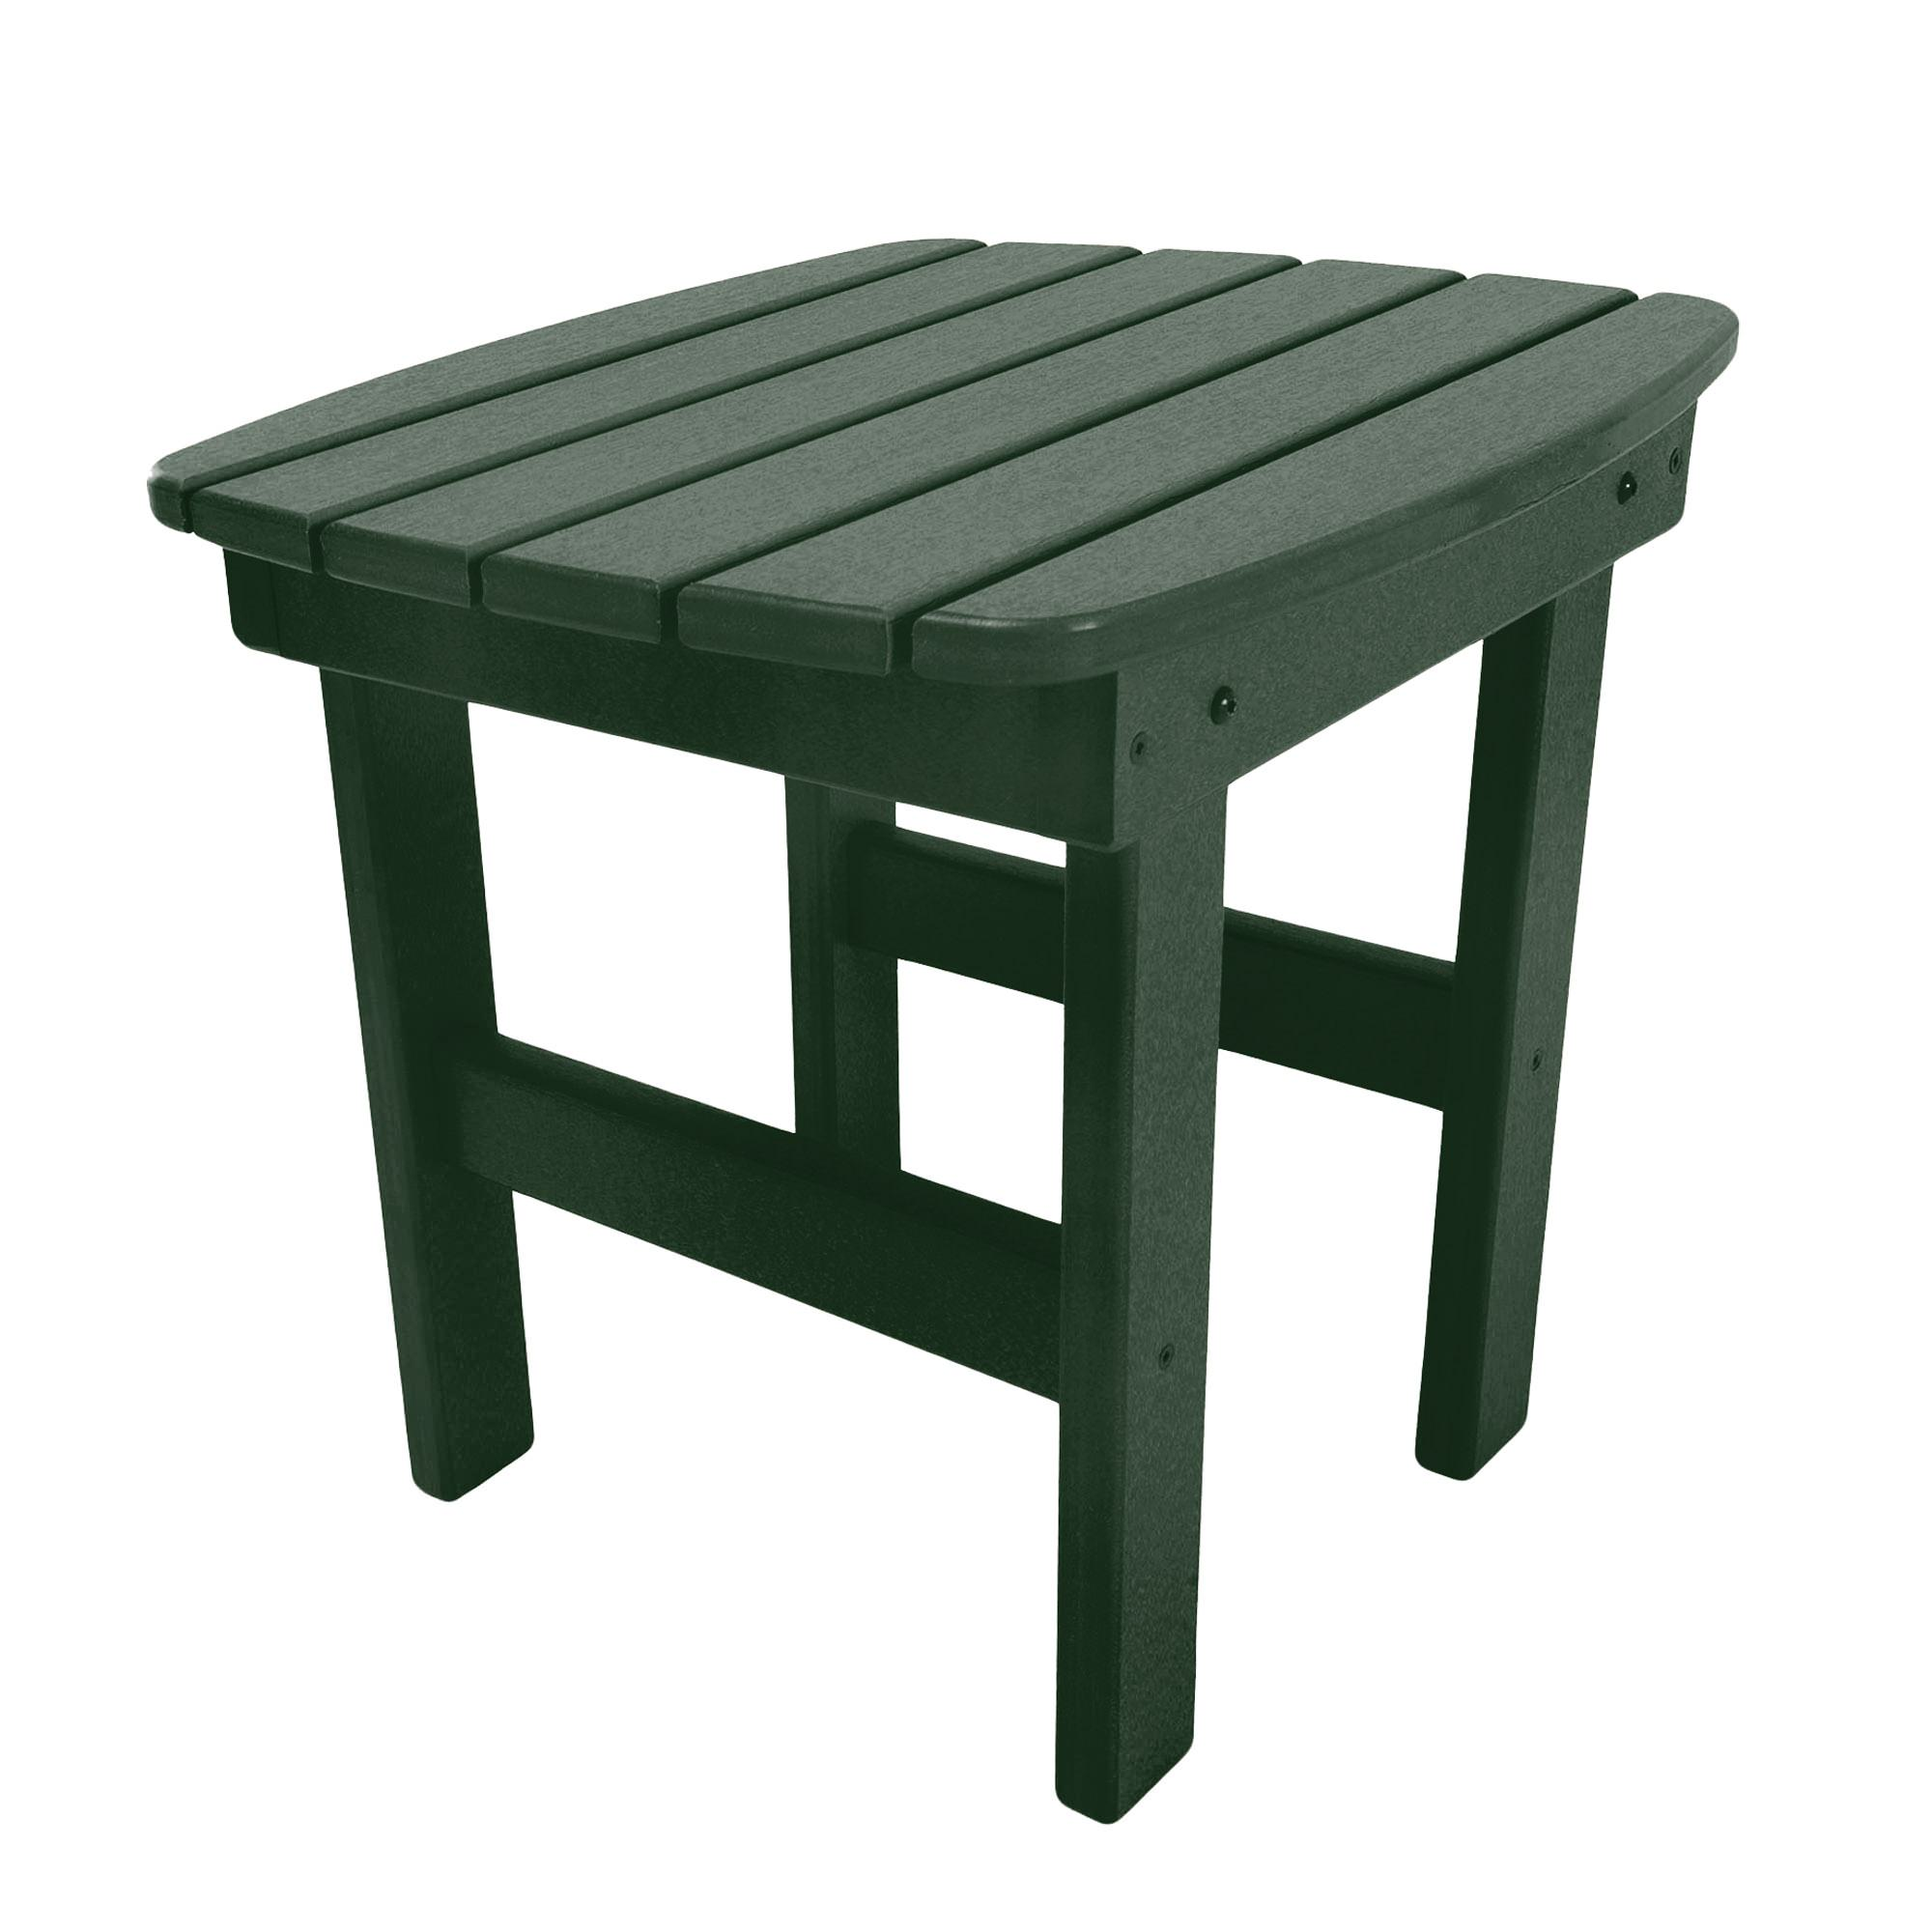 durawood adirondack side tables pawleys island patio table outdoor green modular bedroom furniture plastic garden coffee antique end with leather inlay small student desk blue